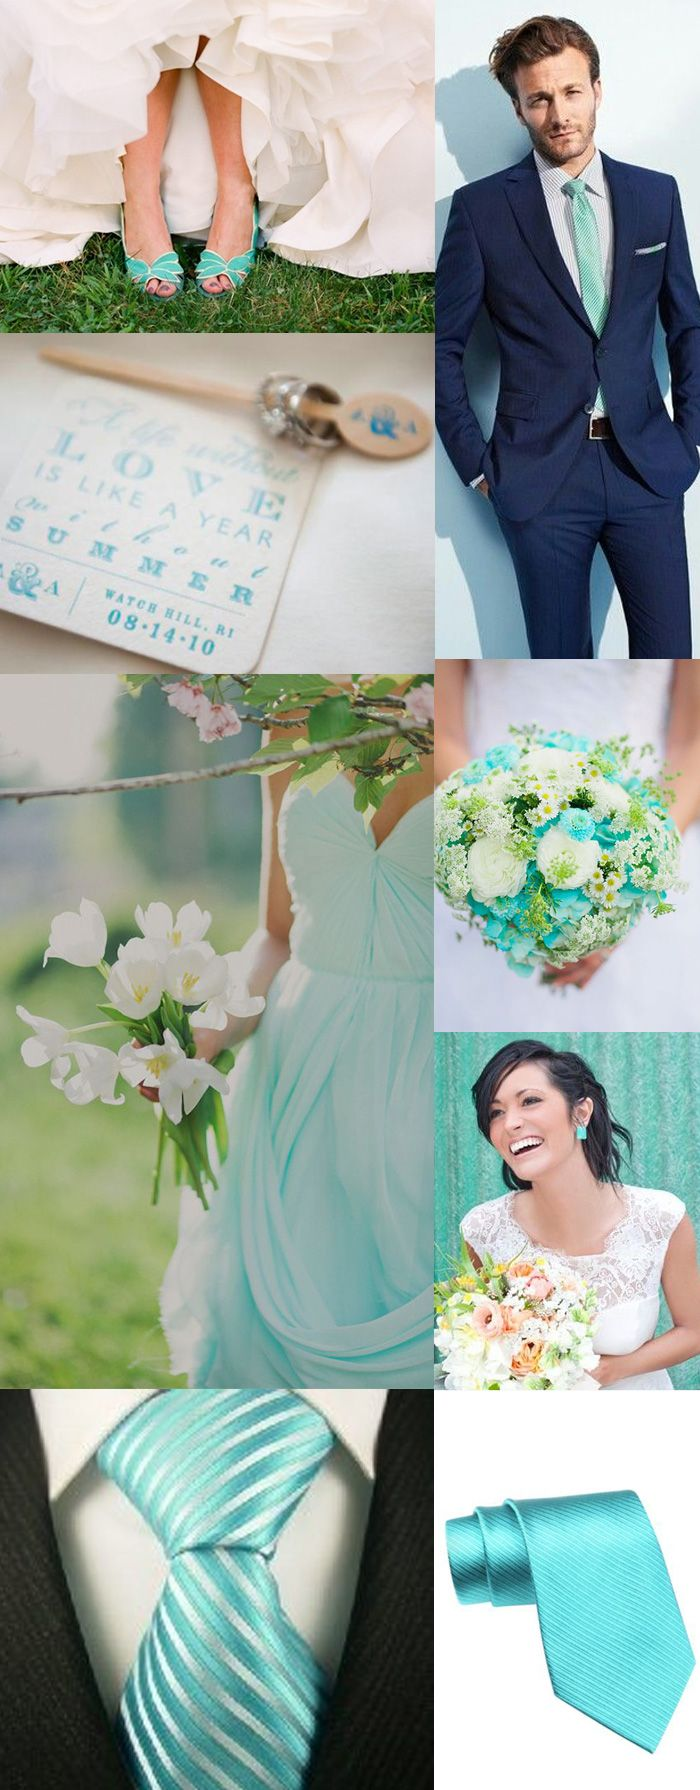 best aqua wedding group board images on pinterest